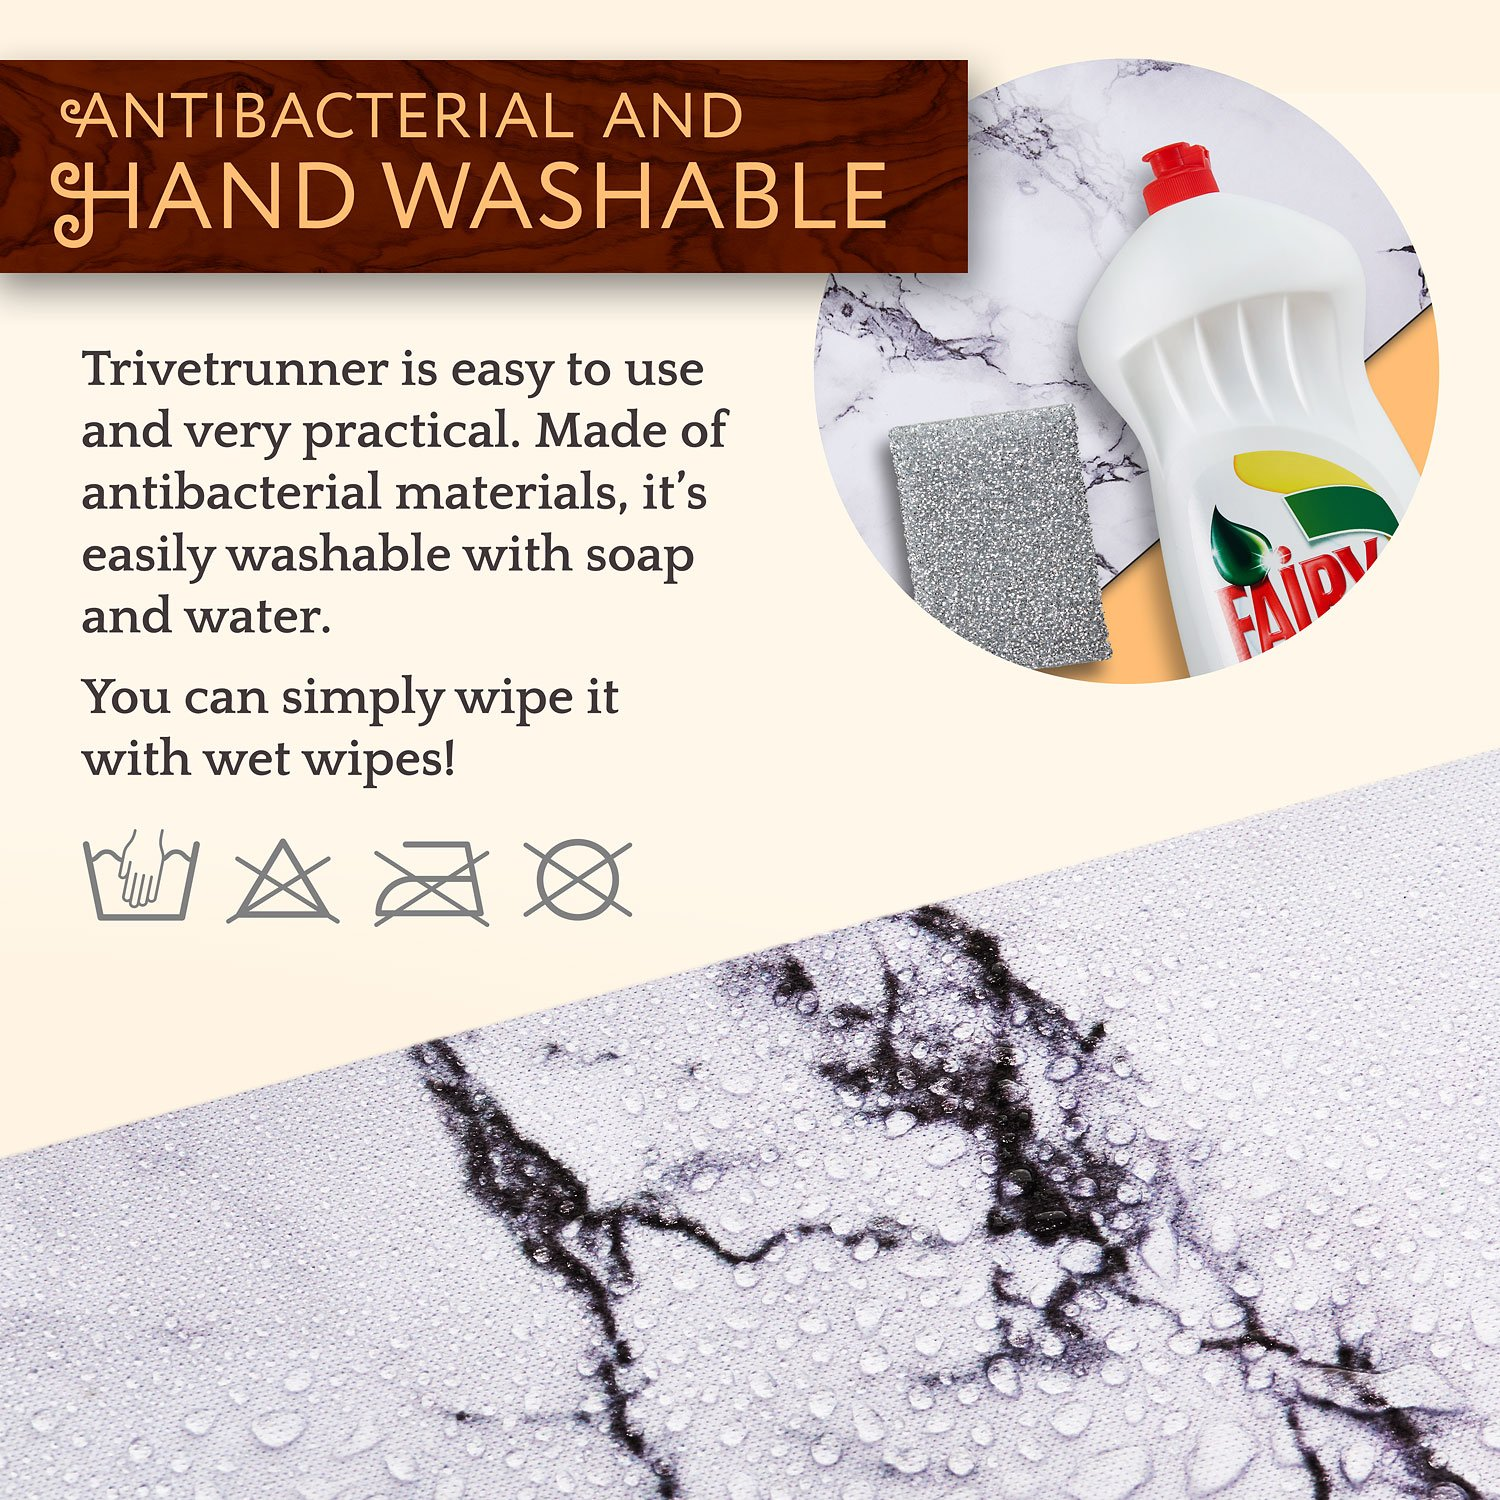 TRIVETRUNNER Decorative Trivet and Kitchen Table Runners Handles Heat Up to 300F, Anti Slip, Hand Washable, and Convenient for Hot Dishes and Pots,Hand Washable (White Marble) by TRIVETRUNNER (Image #6)